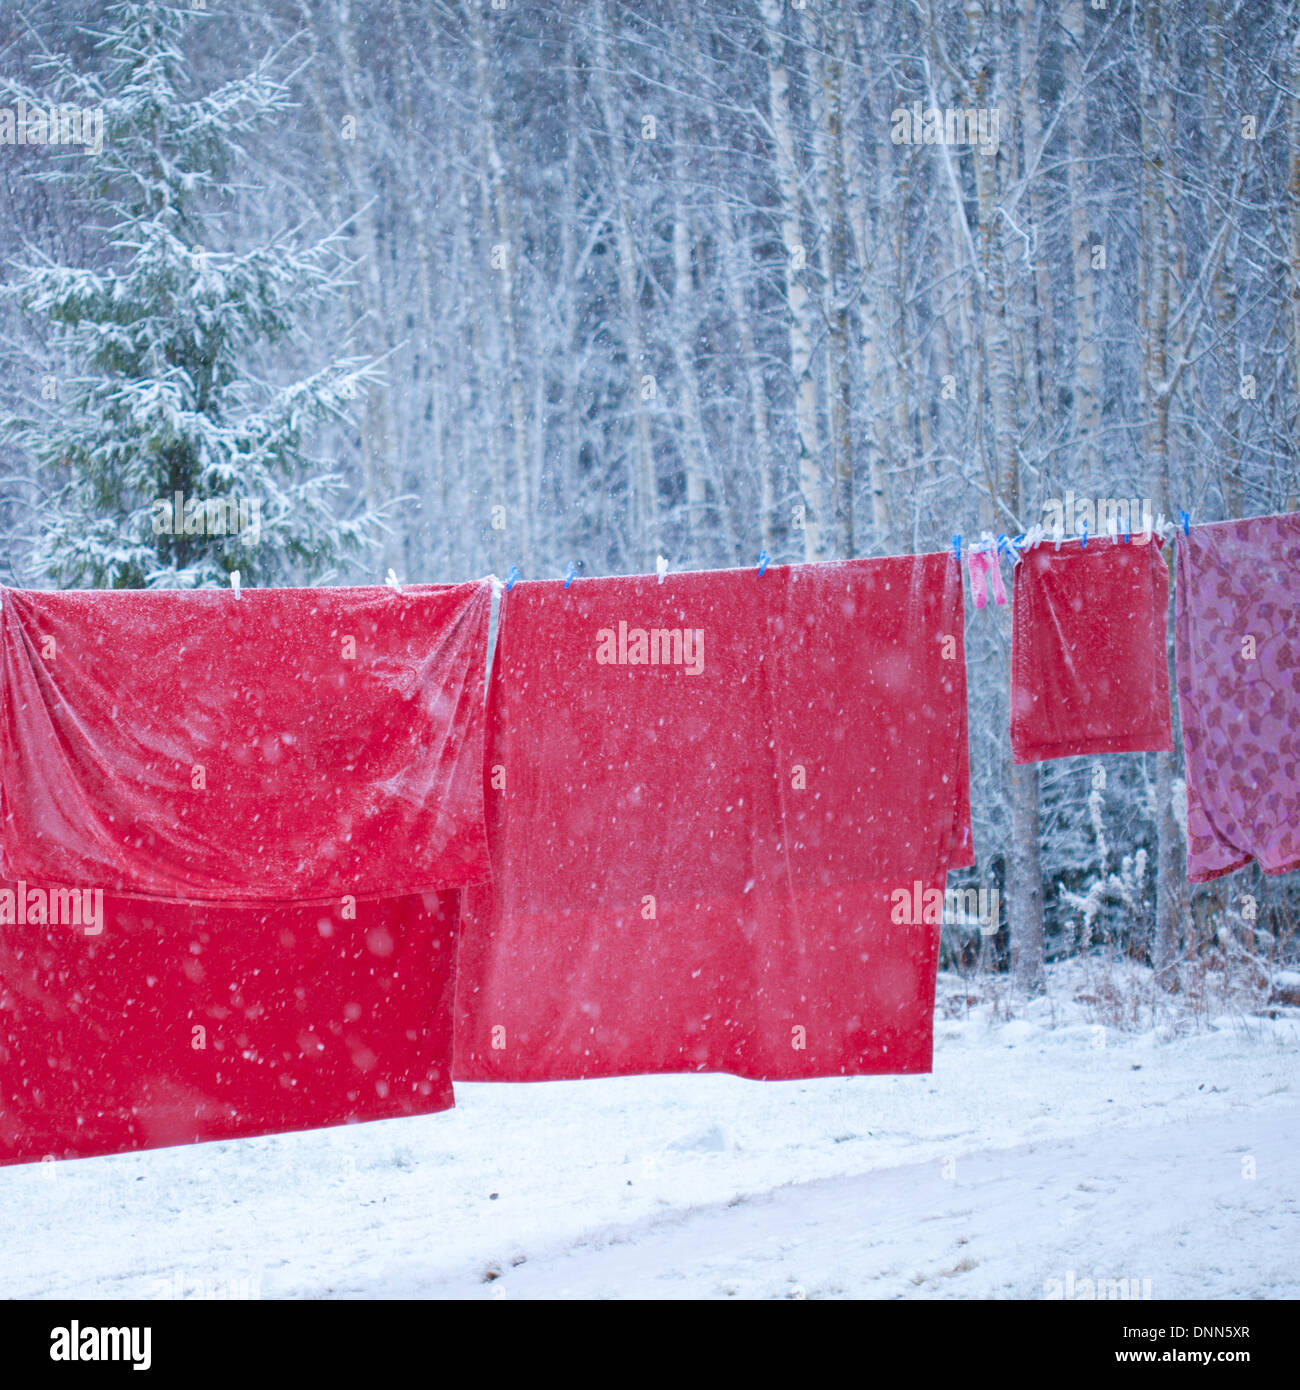 Santa bedlinen drying on clothesline in the snow - Stock Image